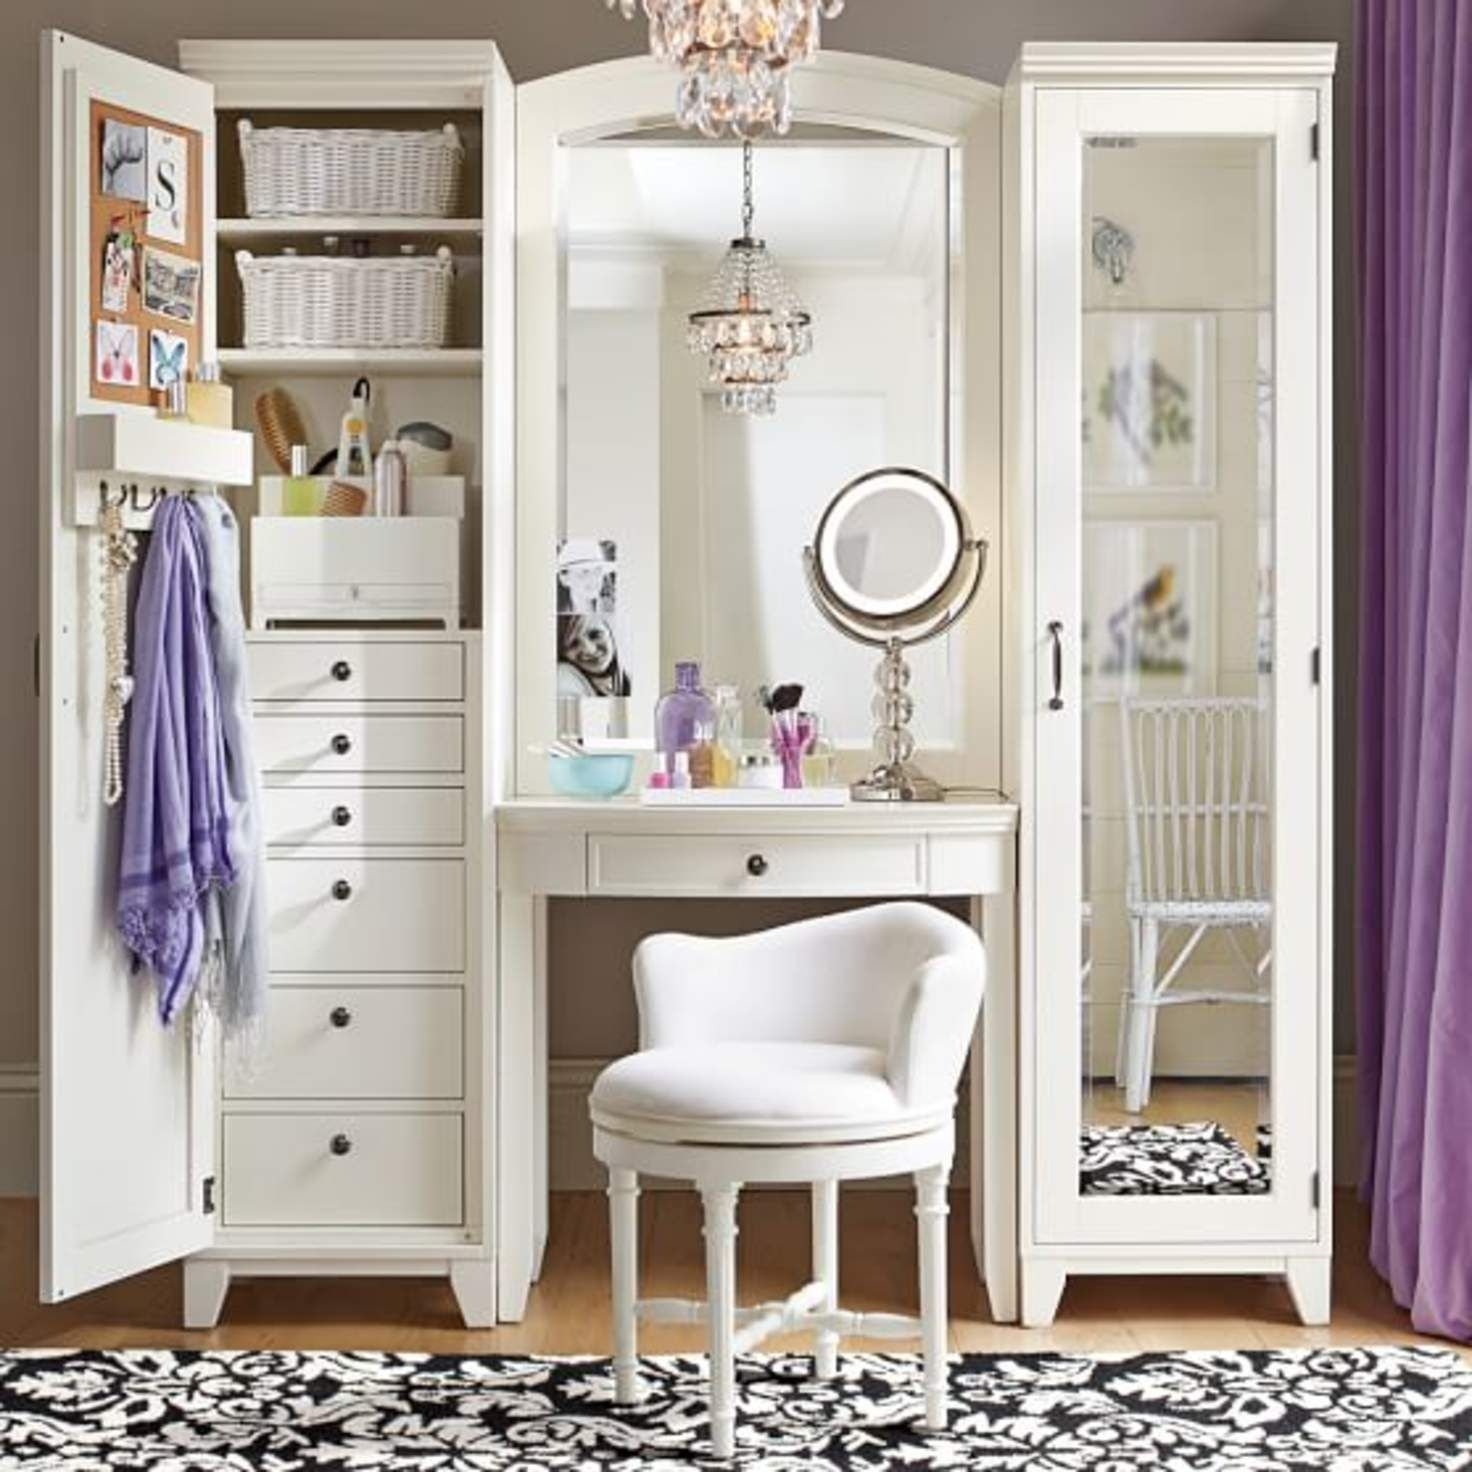 Ordinaire A Chic White Vanity Unit. A Full Door Cabinet Has Shelves And Drawers. A  Glazed Door One   A Mirrored Back And Glass Shelves. An Arched Wall Mirror  Is Over ...